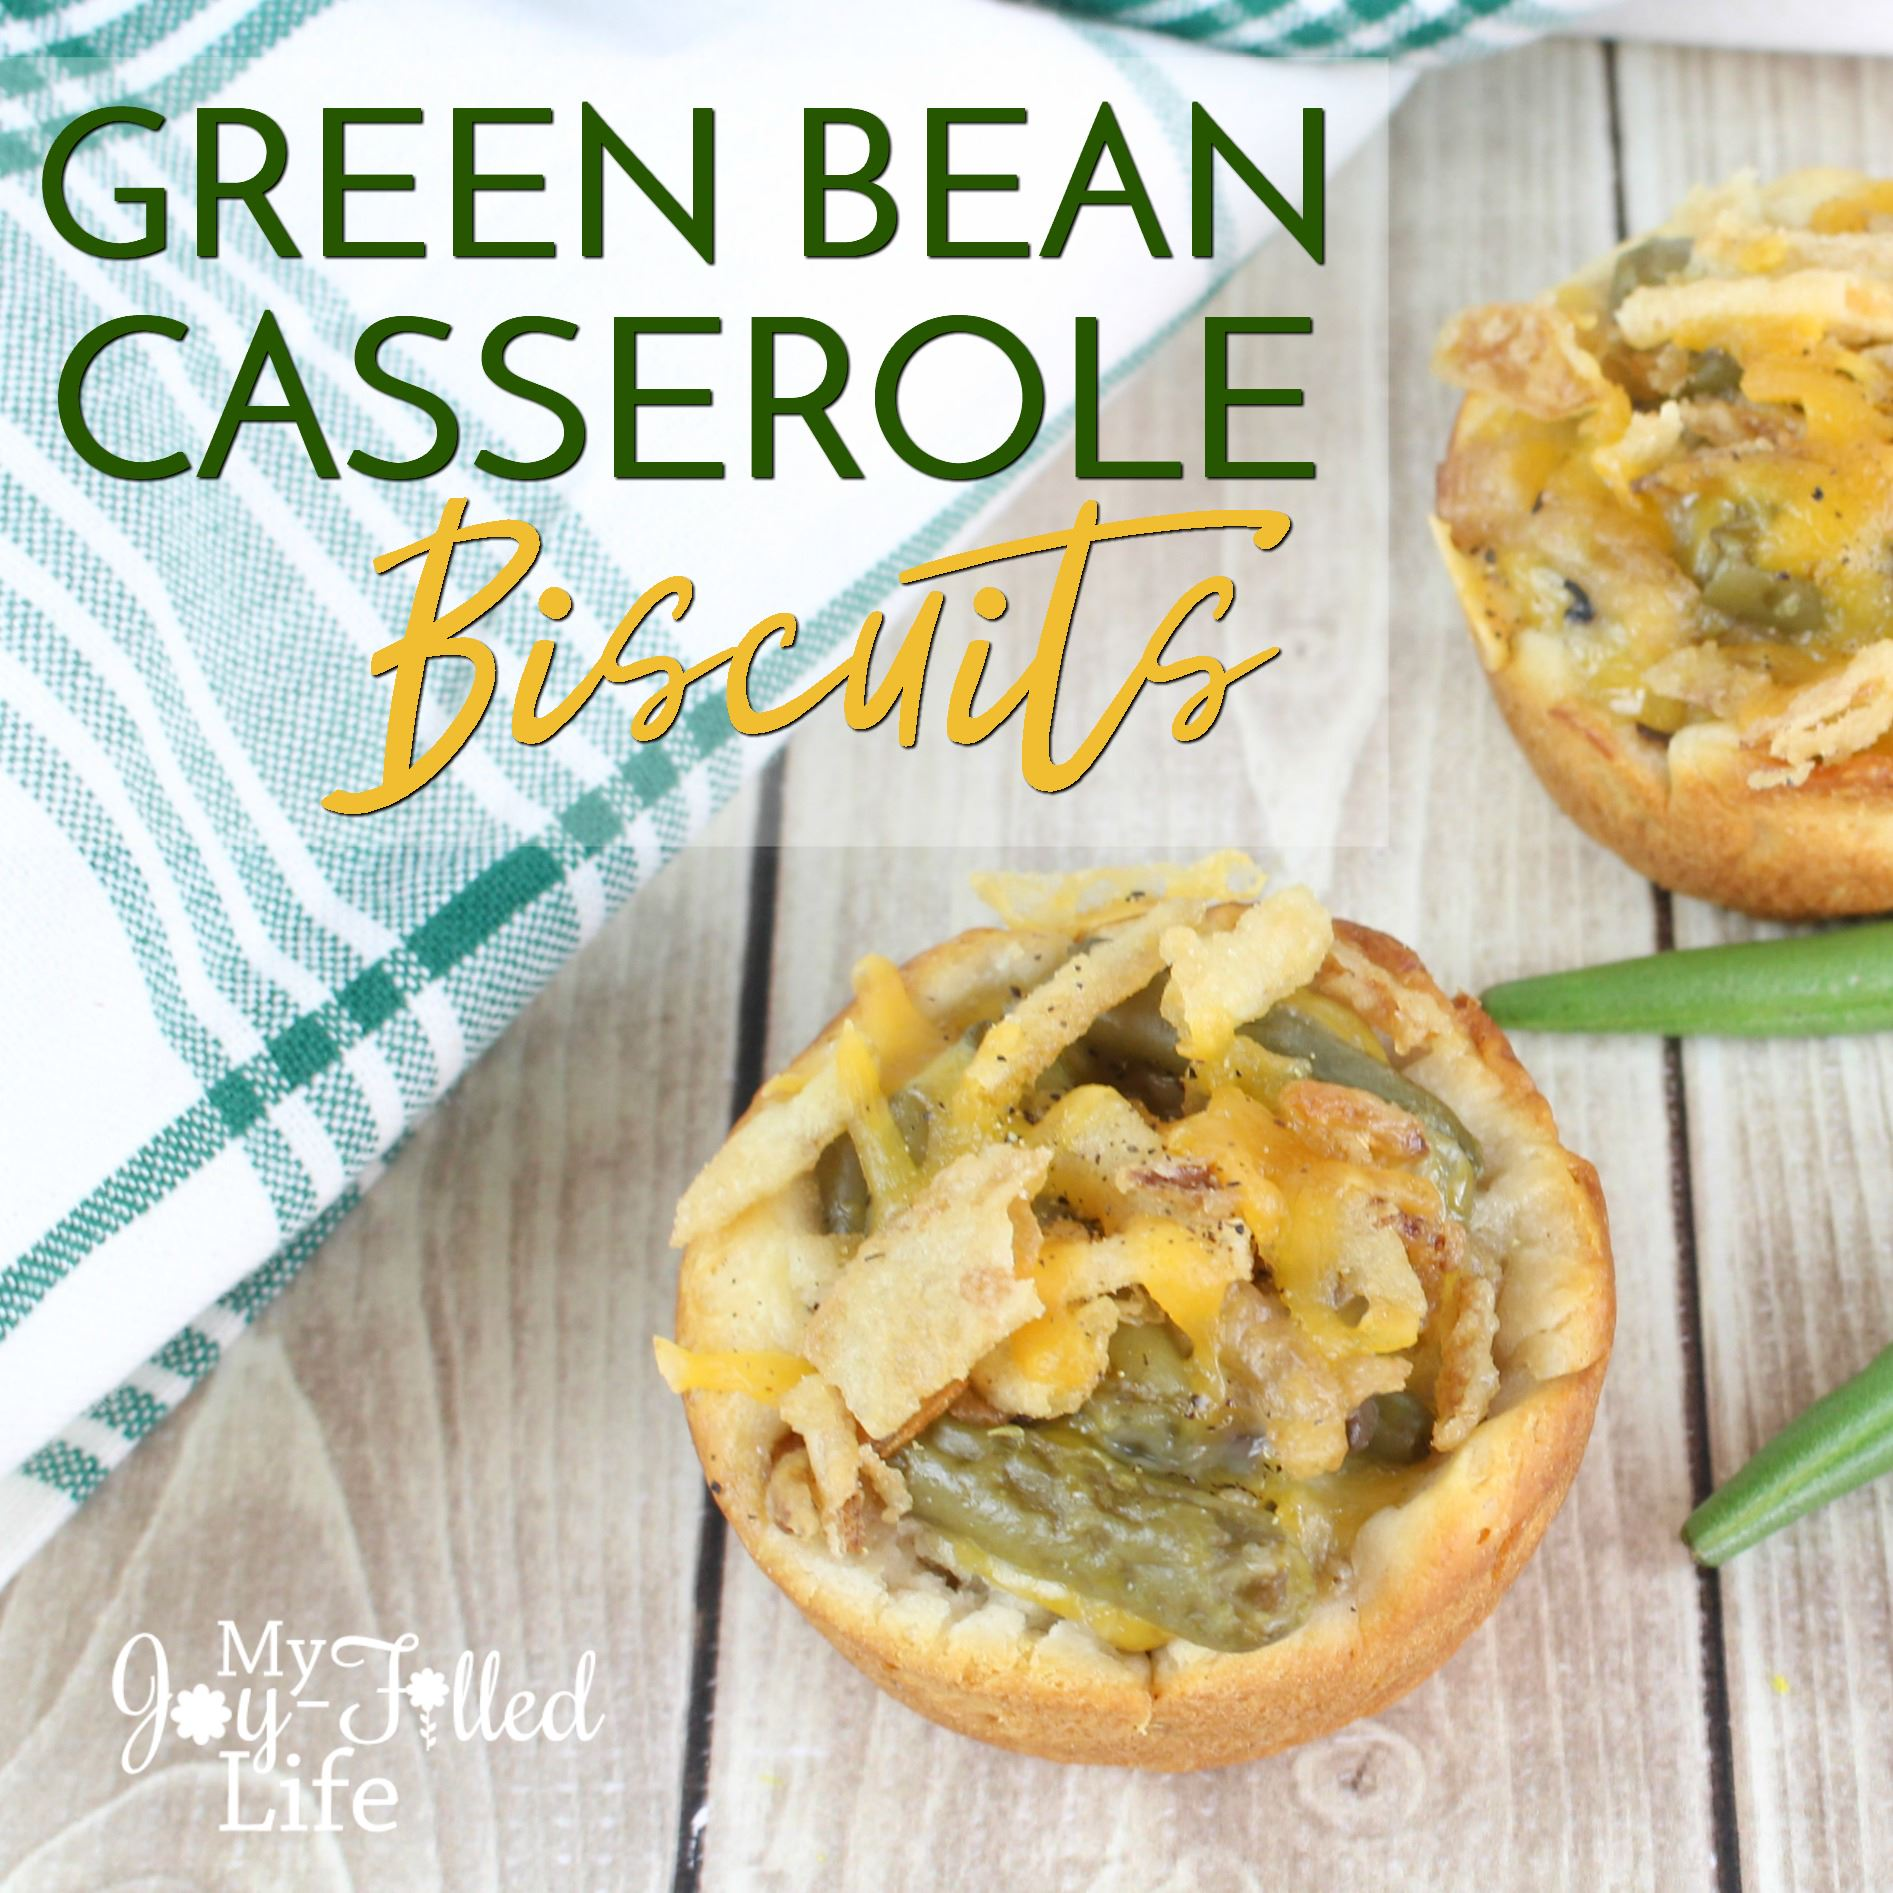 Green Bean Casserole Biscuits